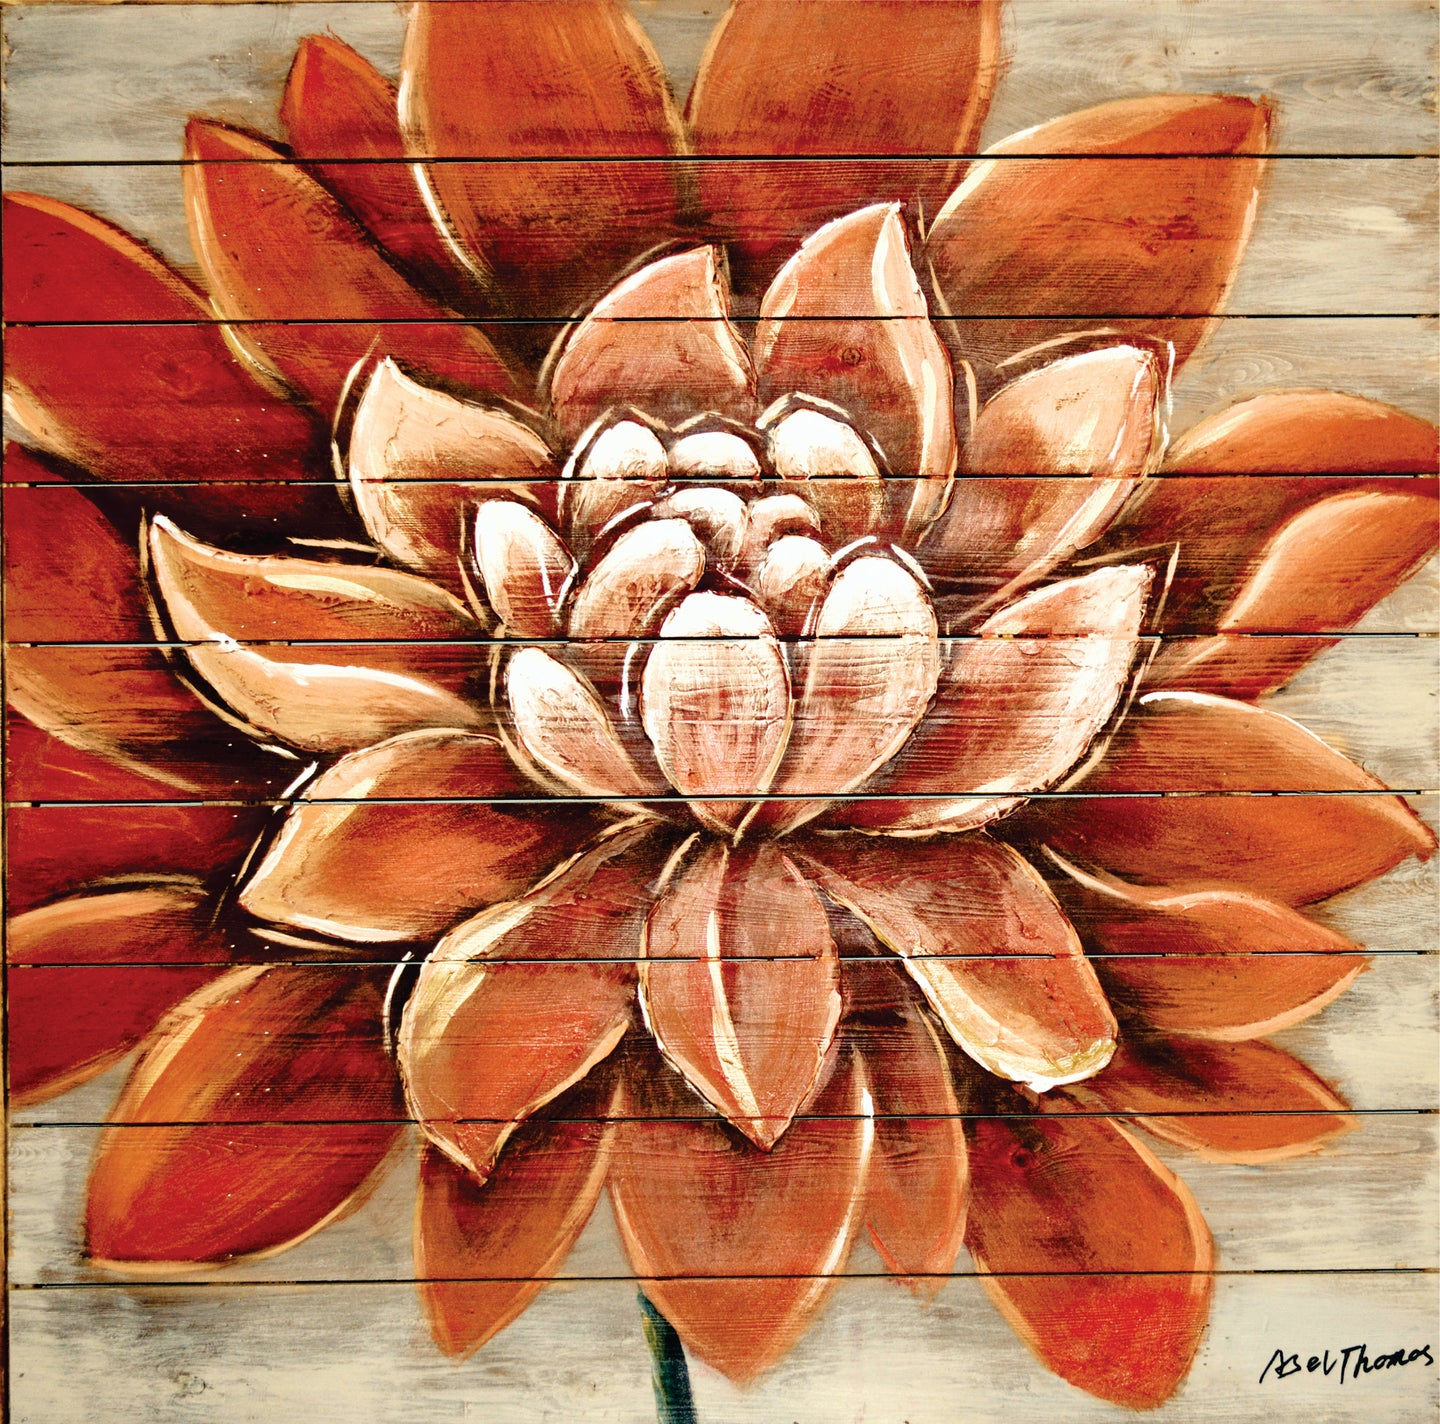 olivia's_loft | olivias_loft | affordable_art | vancouver_artist | whiterock_artist | seattle_artist | floral_painting | interior_design | home_statging | wall_art | renovation_ideas | decoration_ideas | BC_artist | canadian_art | office|_decoration | pallet_wood_art | woodboard_art